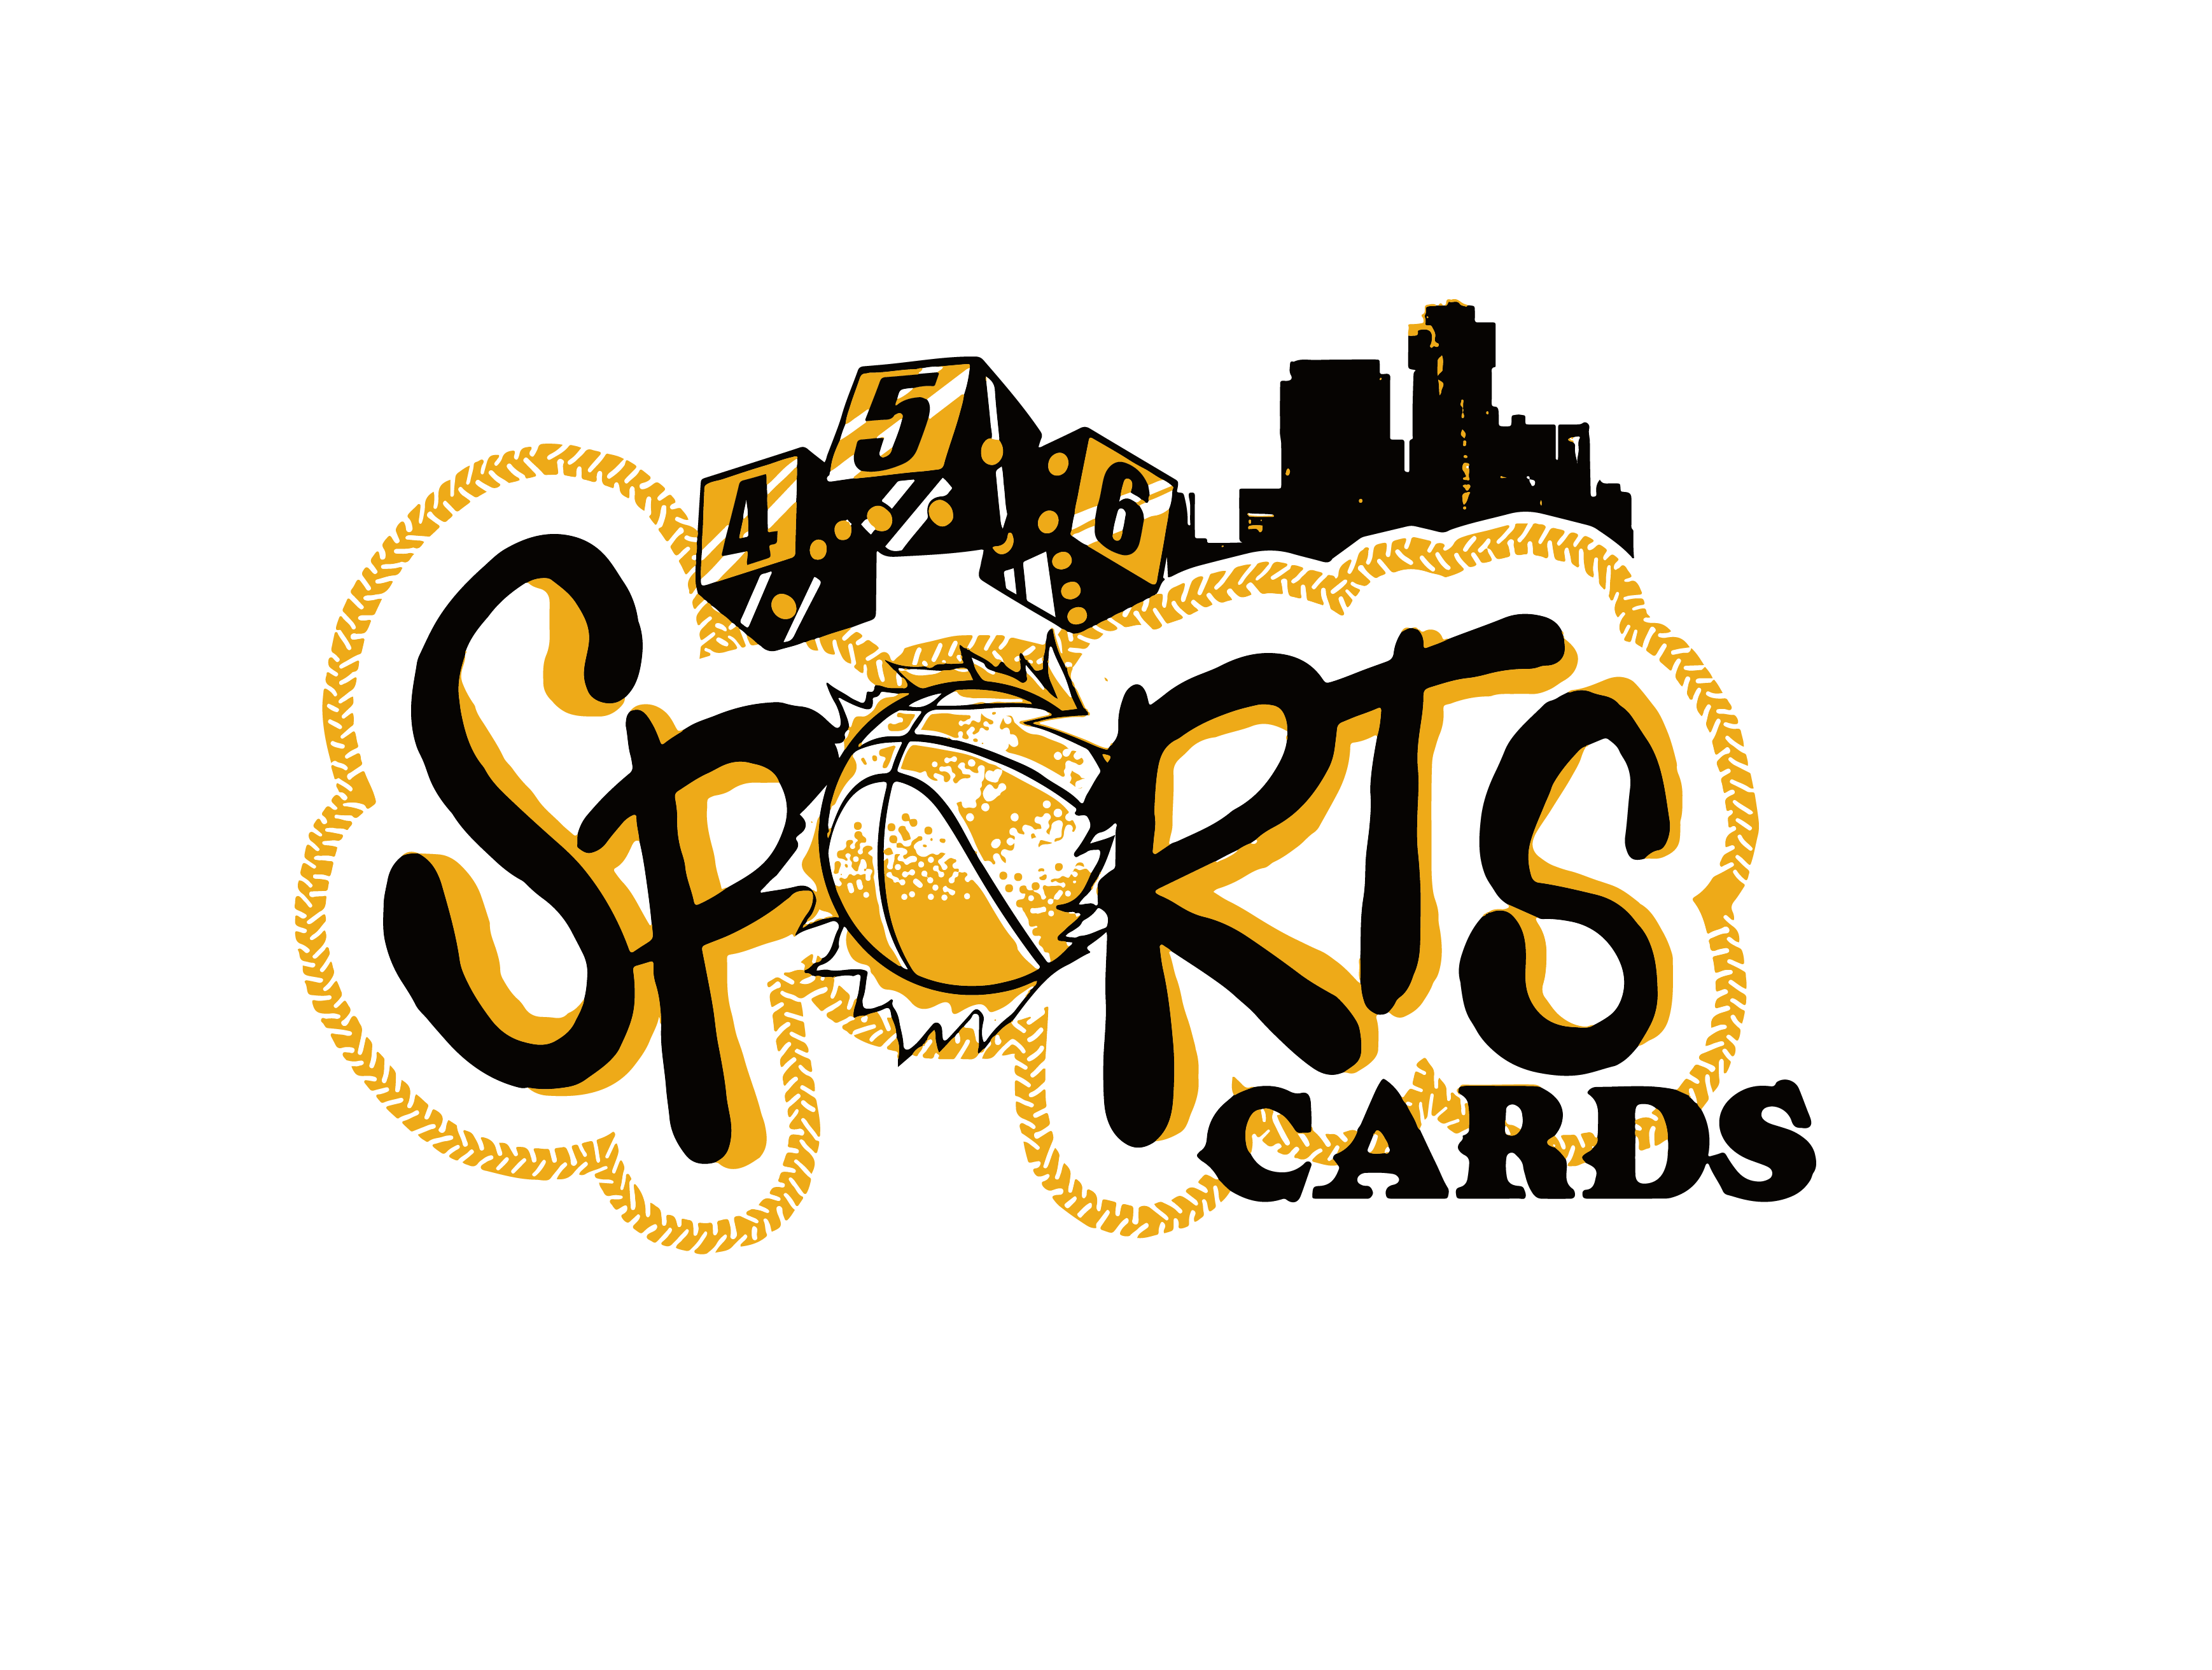 456 Sports Cards